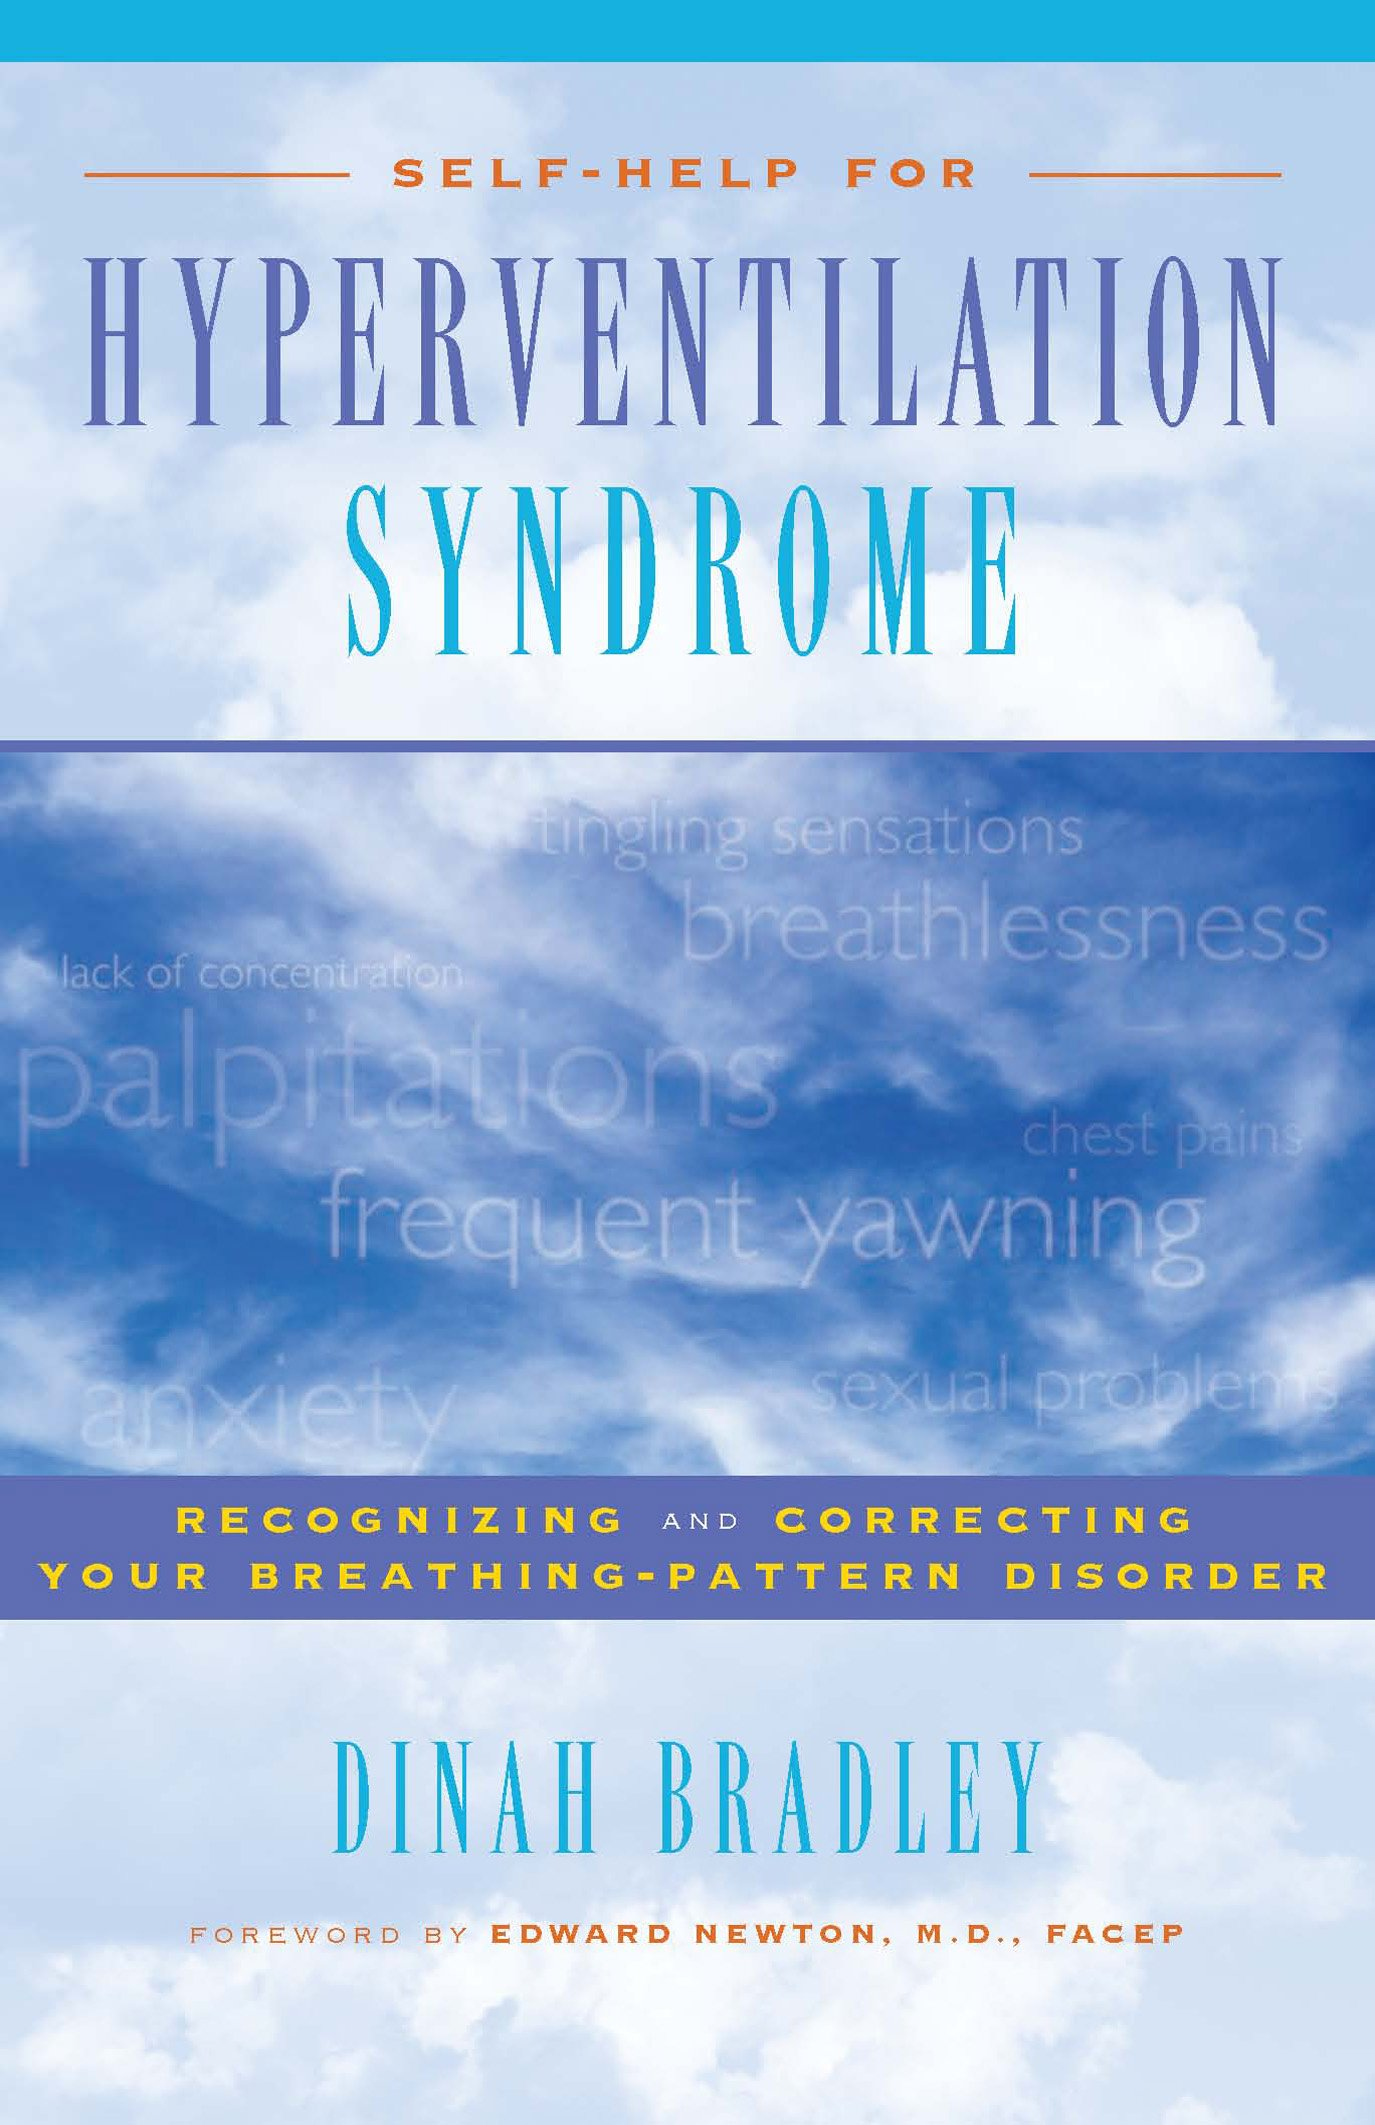 Self-Help for Hyperventilation Syndrome: Recognizing and Correcting Your Breathing Pattern Disorder ebook